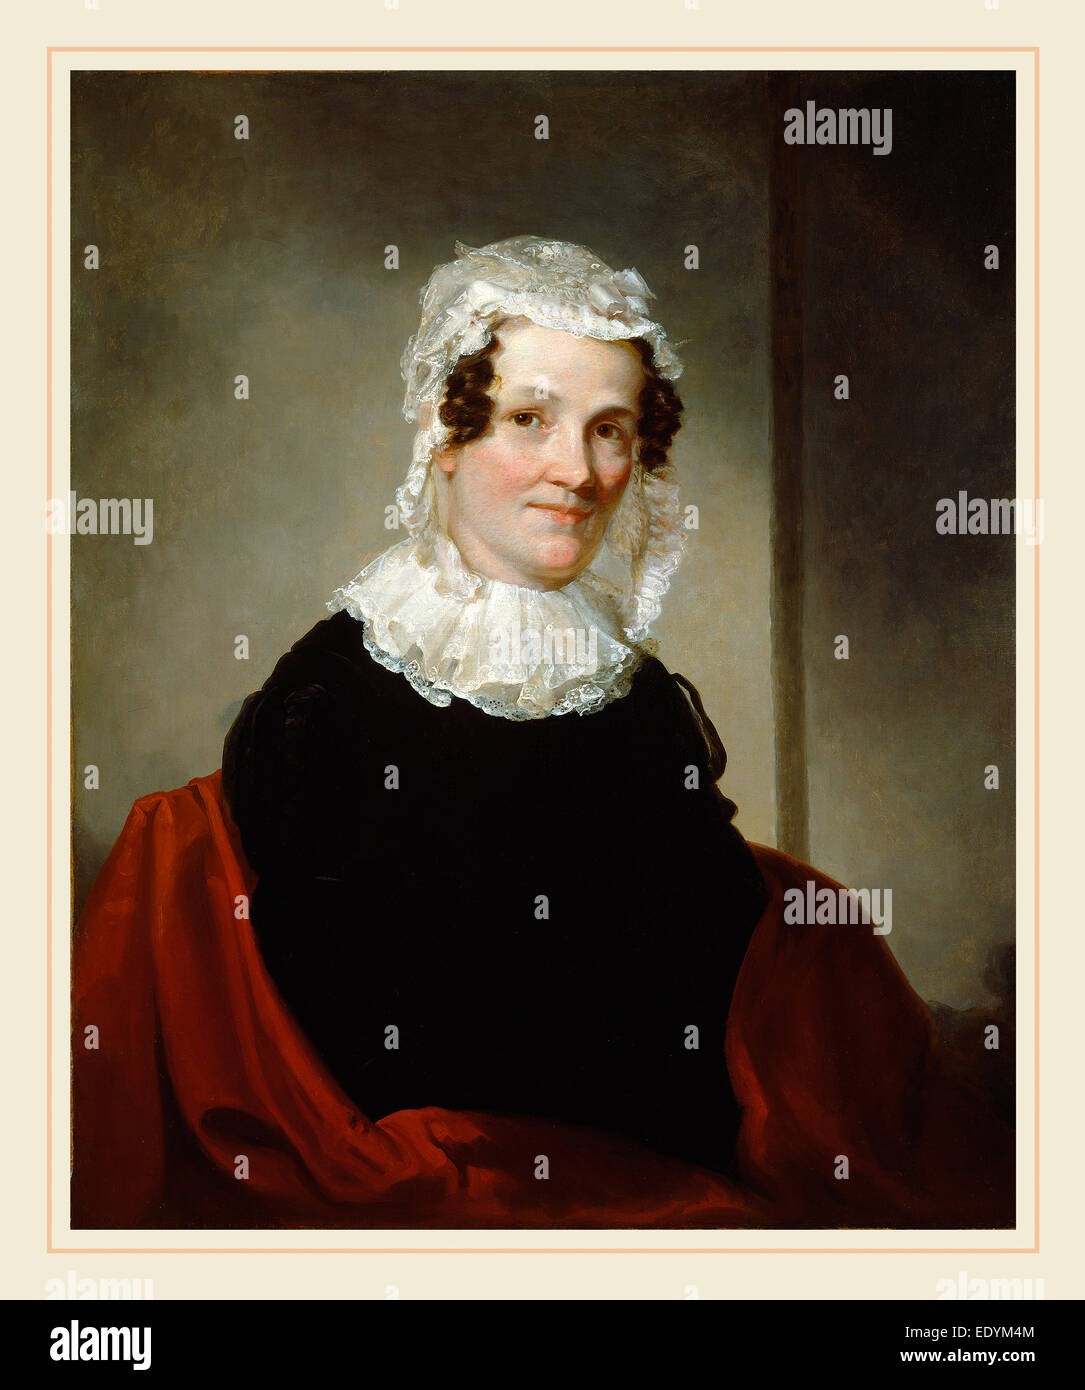 Samuel Finley Breese Morse, Lydia Coit Terry (Mrs. Eliphalet Terry), American, 1791-1872, c. 1824, oil on canvas - Stock Image